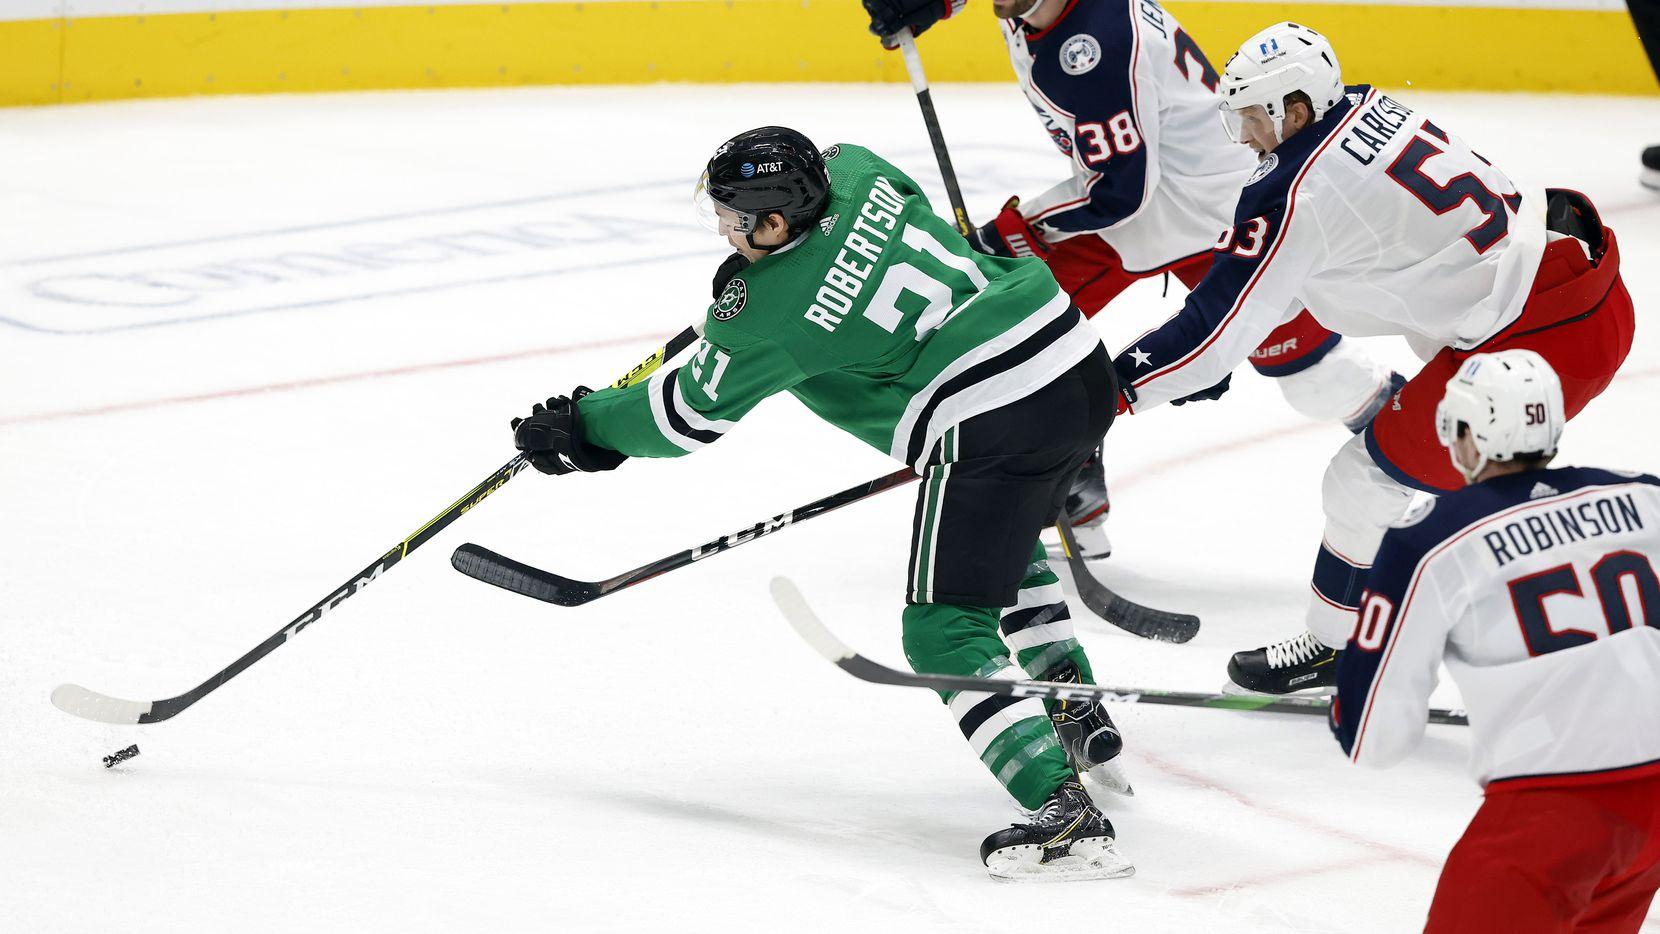 Dallas Stars left wing Jason Robertson (21) shoots and scores a third period goal against Columbus Blue Jackets defenseman Gabriel Carlsson (53) and center Boone Jenner (38) at the American Airlines Center in Dallas, Thursday, March 4, 2021. The Stars fell to the Blue Jackets, 3-2. (Tom Fox/The Dallas Morning News)